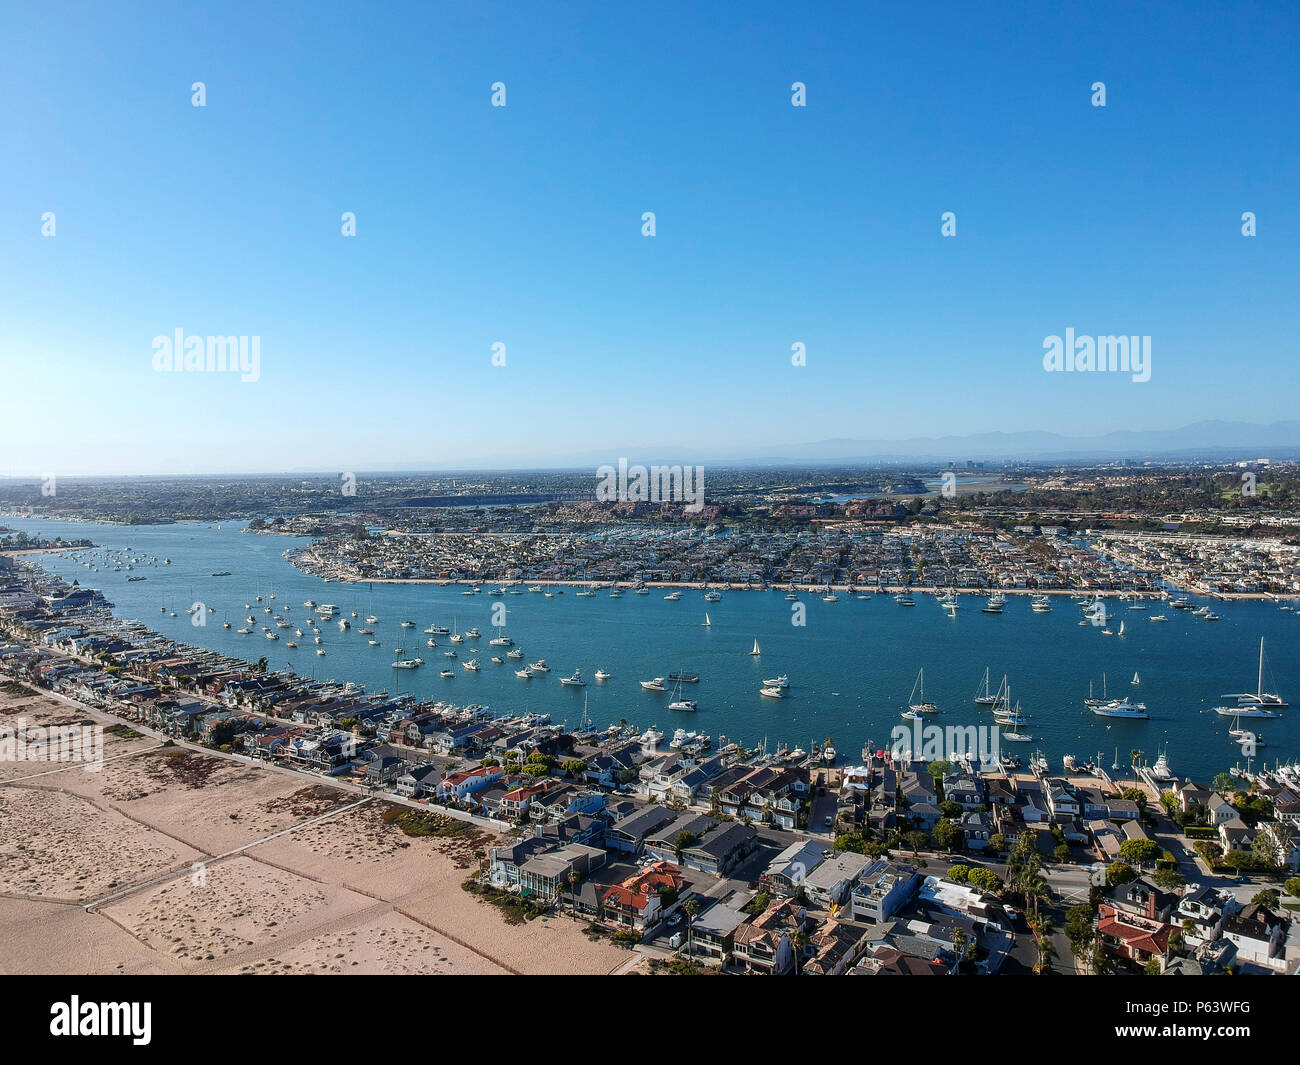 An aerial shot at 330 feet/100 meters looking out over the Newport skyline, the Balboa Peninsula and the Newport Bay full of boats. Captured in Southe - Stock Image